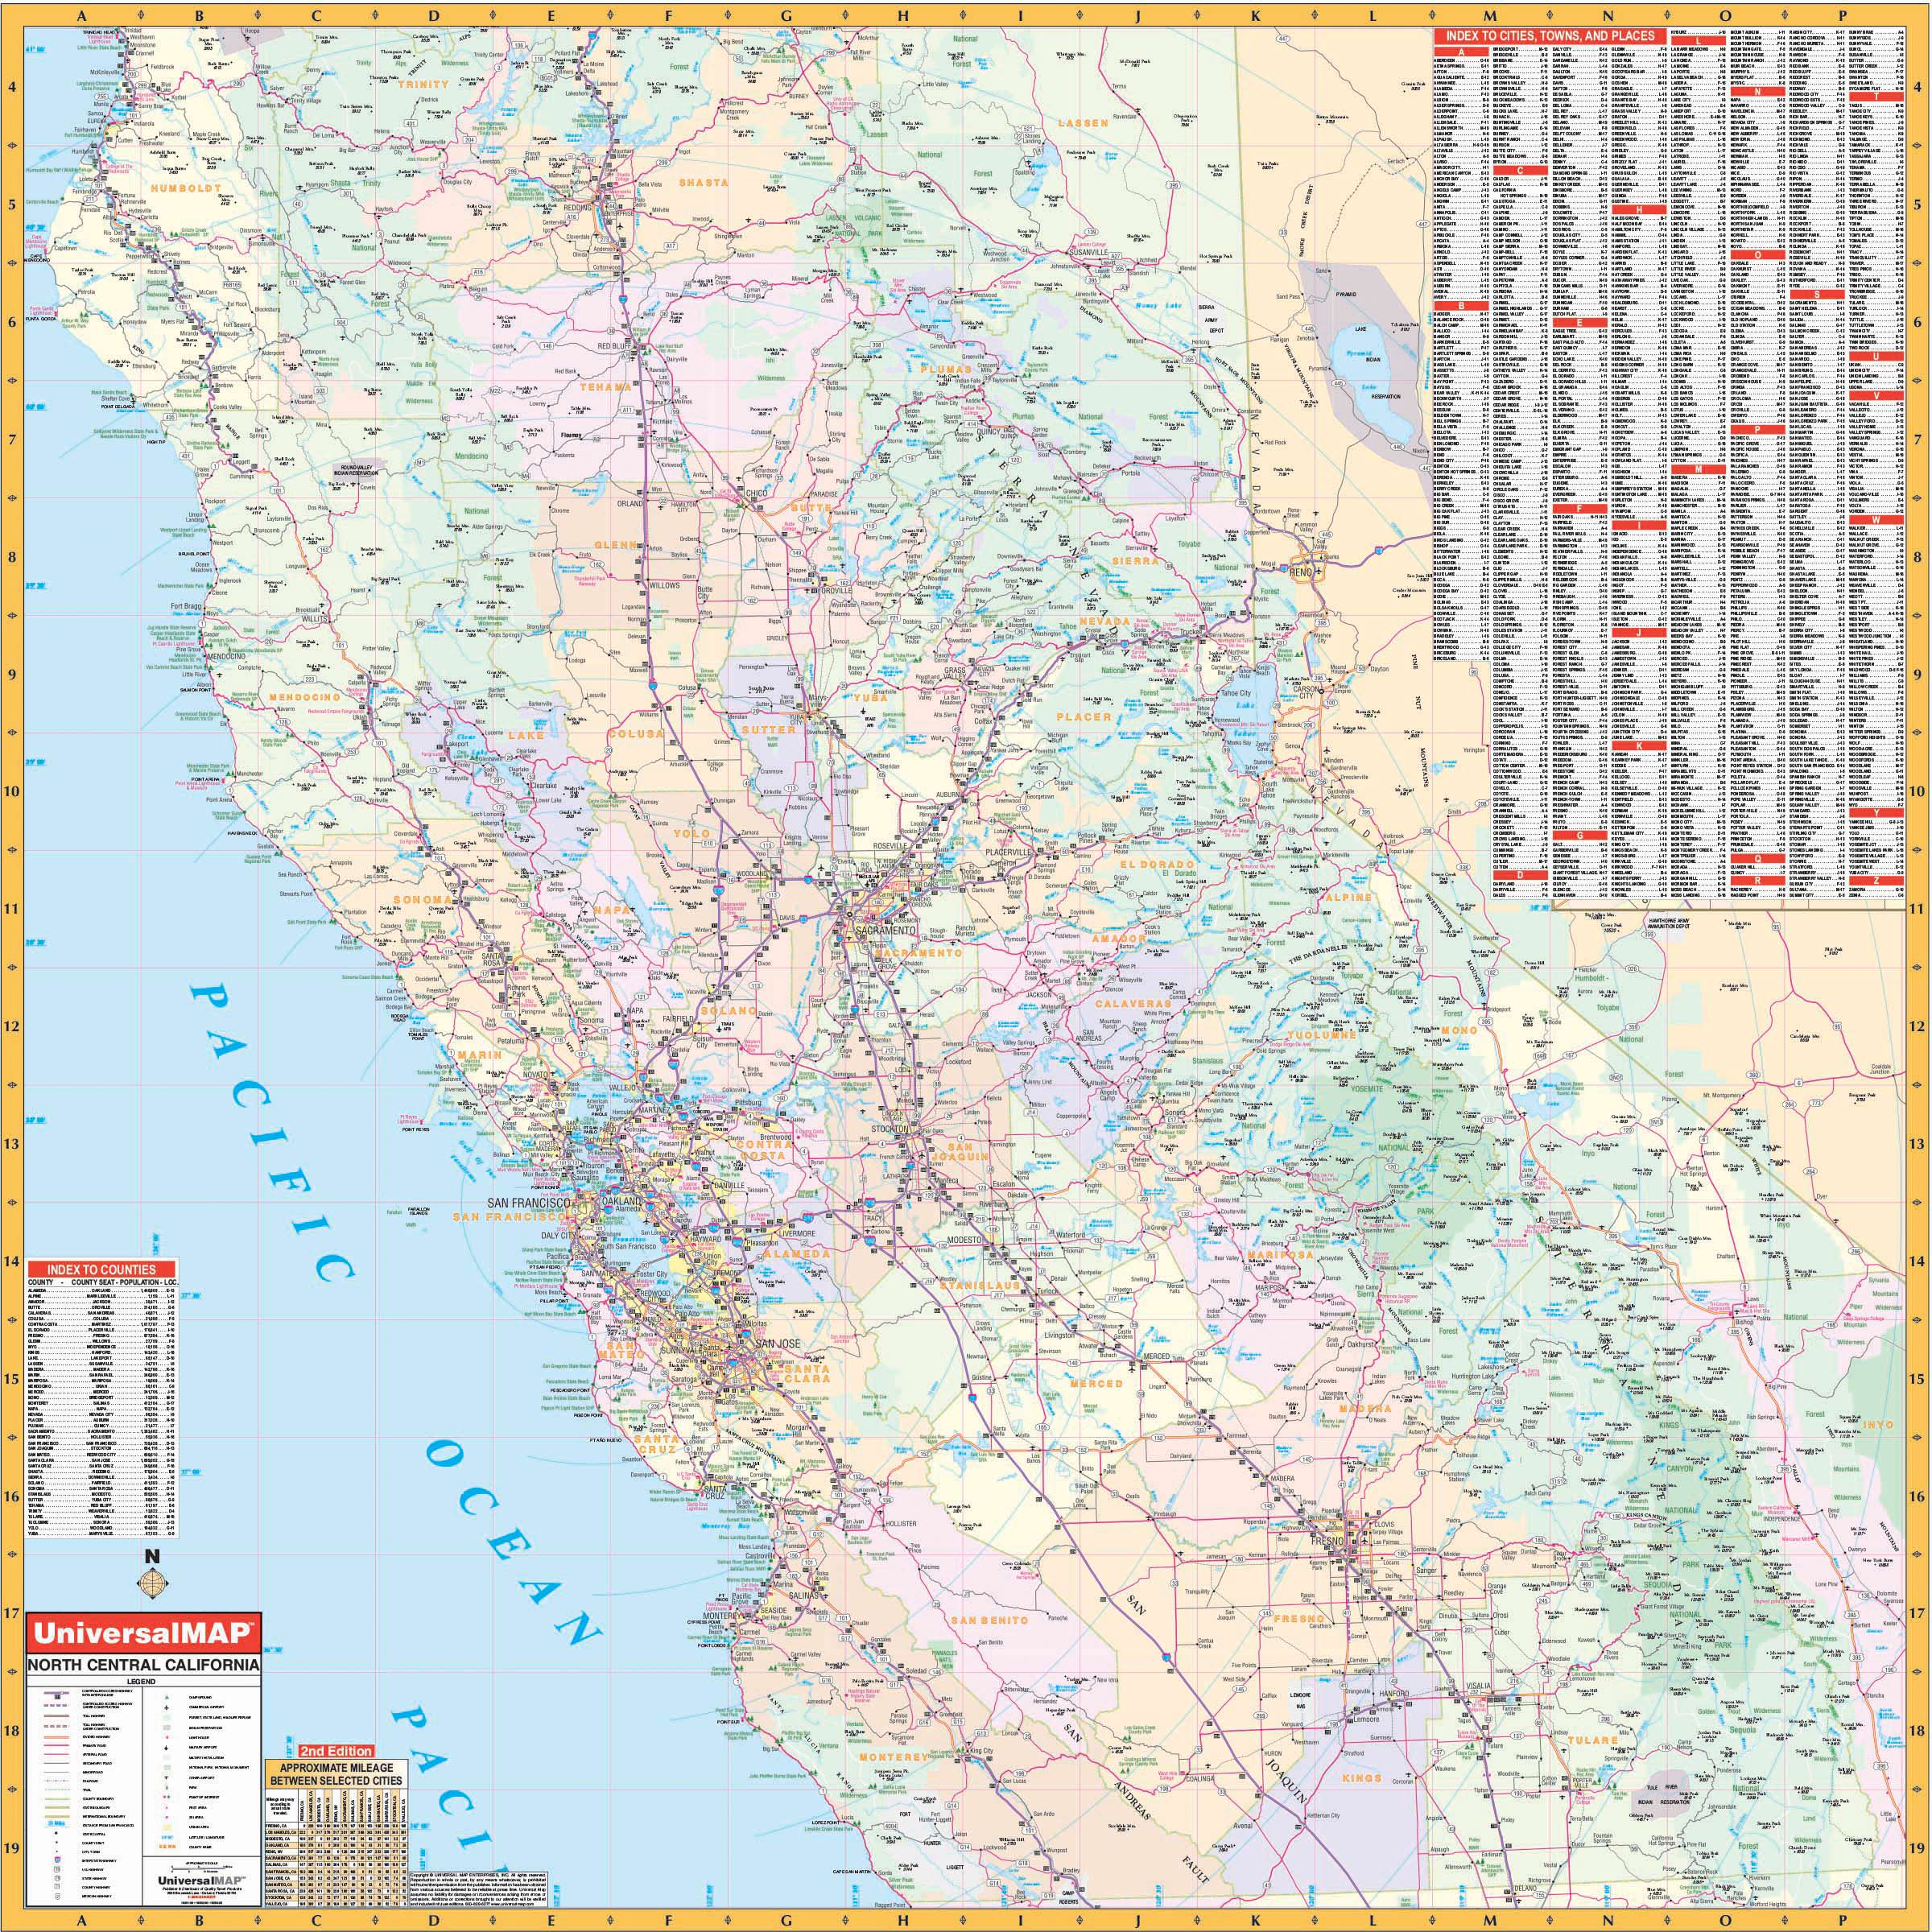 California State North Central Wall Map – KAPPA MAP GROUP